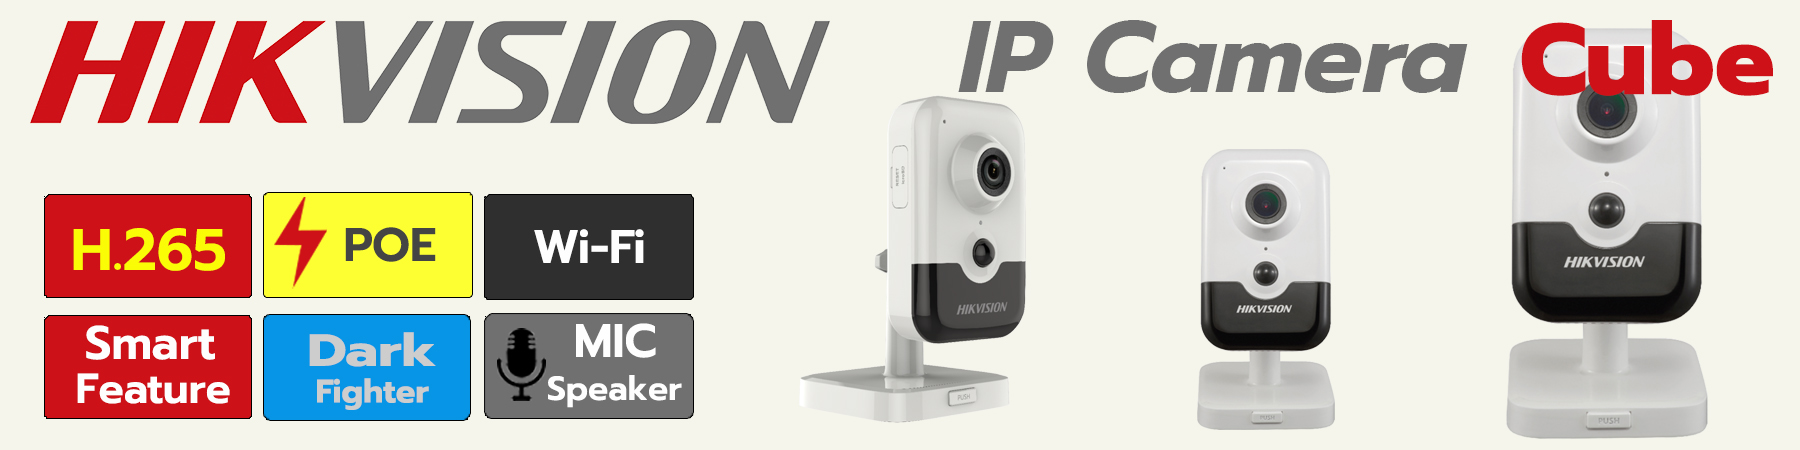 Hikvision Cube IPC, กล้อง Hikvision Cube, กล้อง Hikvision, Hikvision PIR, Hikvision Cube Network Camera, DS-2CD2421G0-IW, DS-2CD2423G0-IW, DS-2CD2425FWD-IW